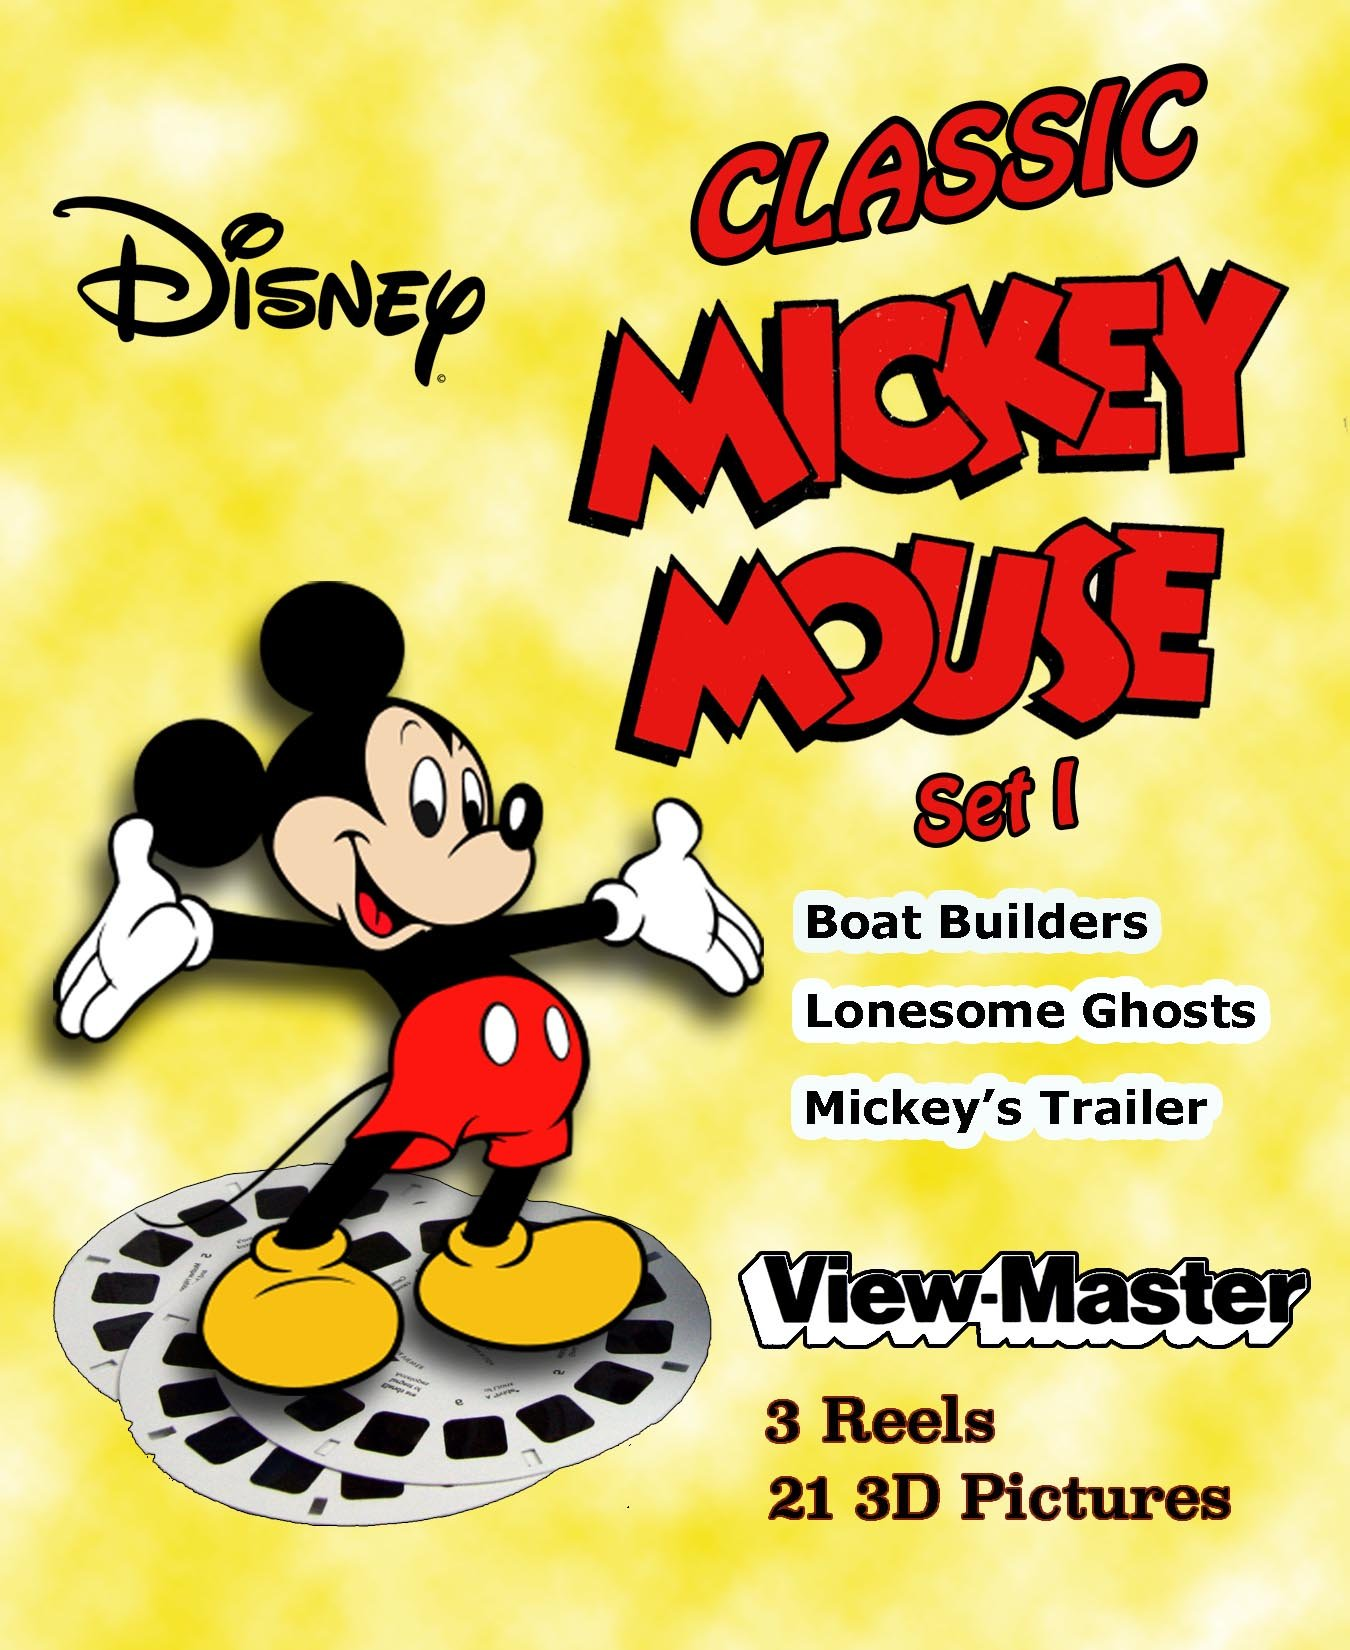 MICKEY MOUSE - Set 1 - Disney's Classic ViewMaster 3 Reels - 3 Stories by 3Dstereo ViewMaster (Image #1)